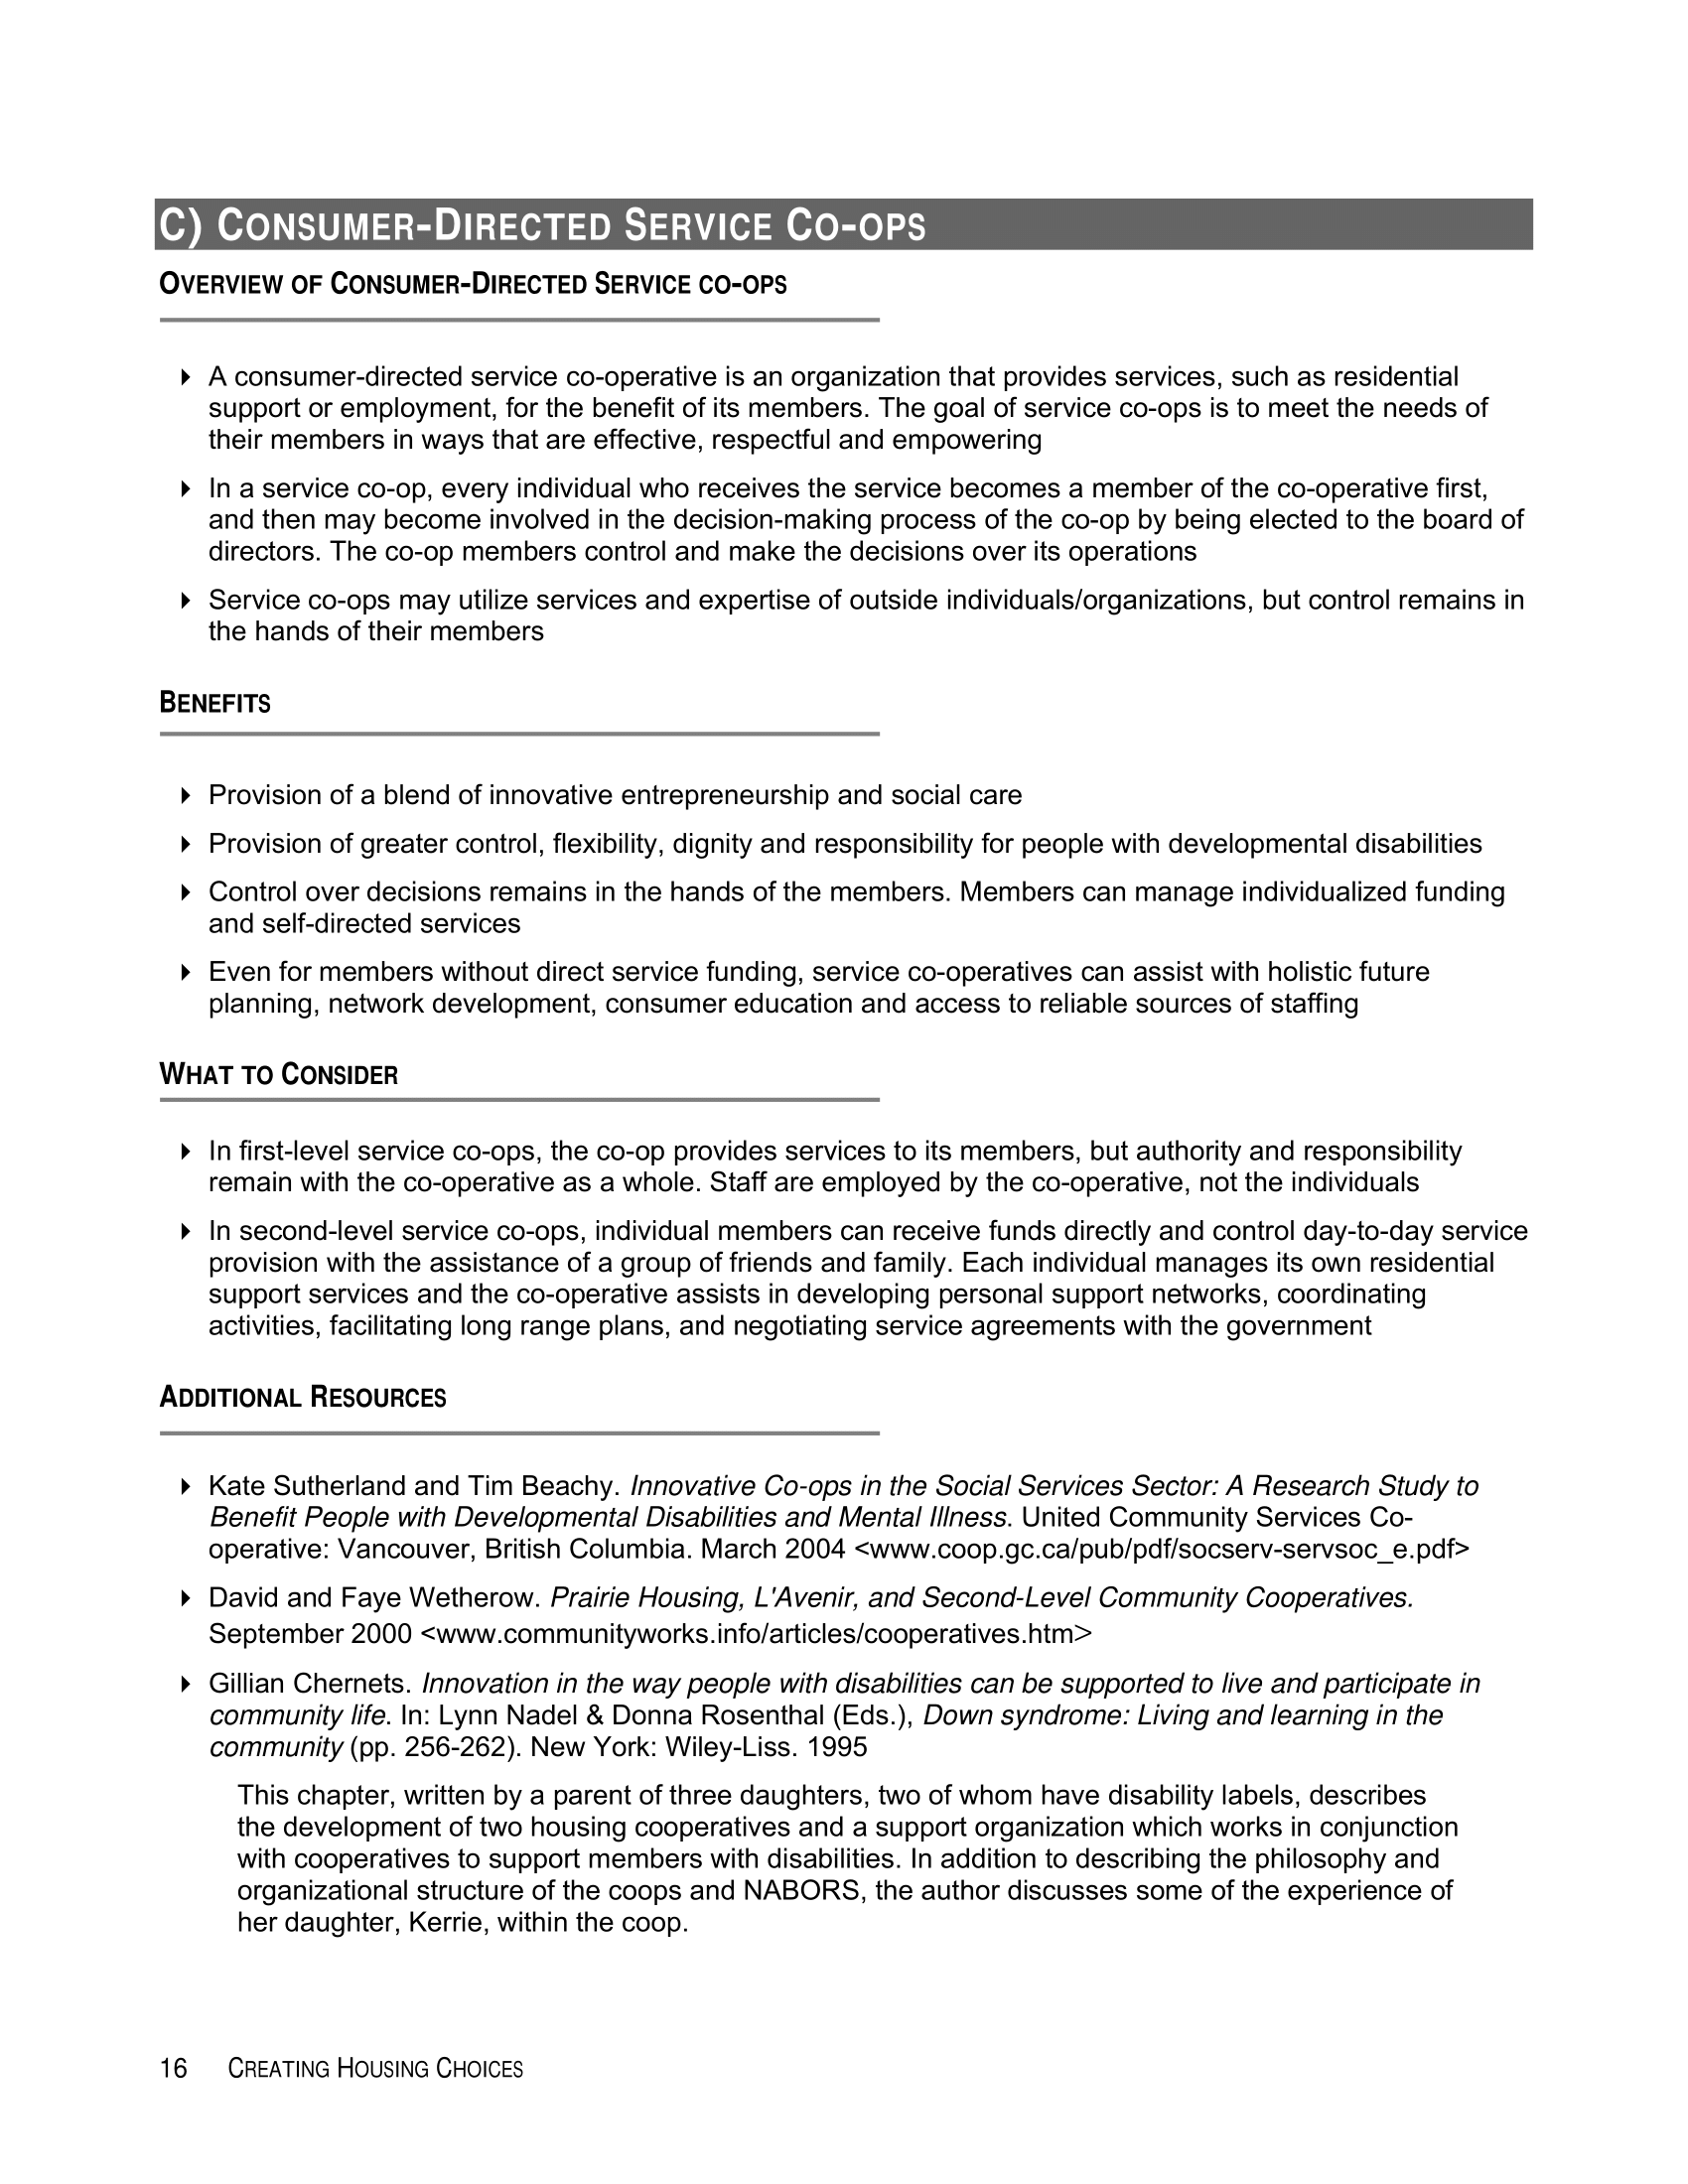 Creating Housing Choices - 2006-17.png